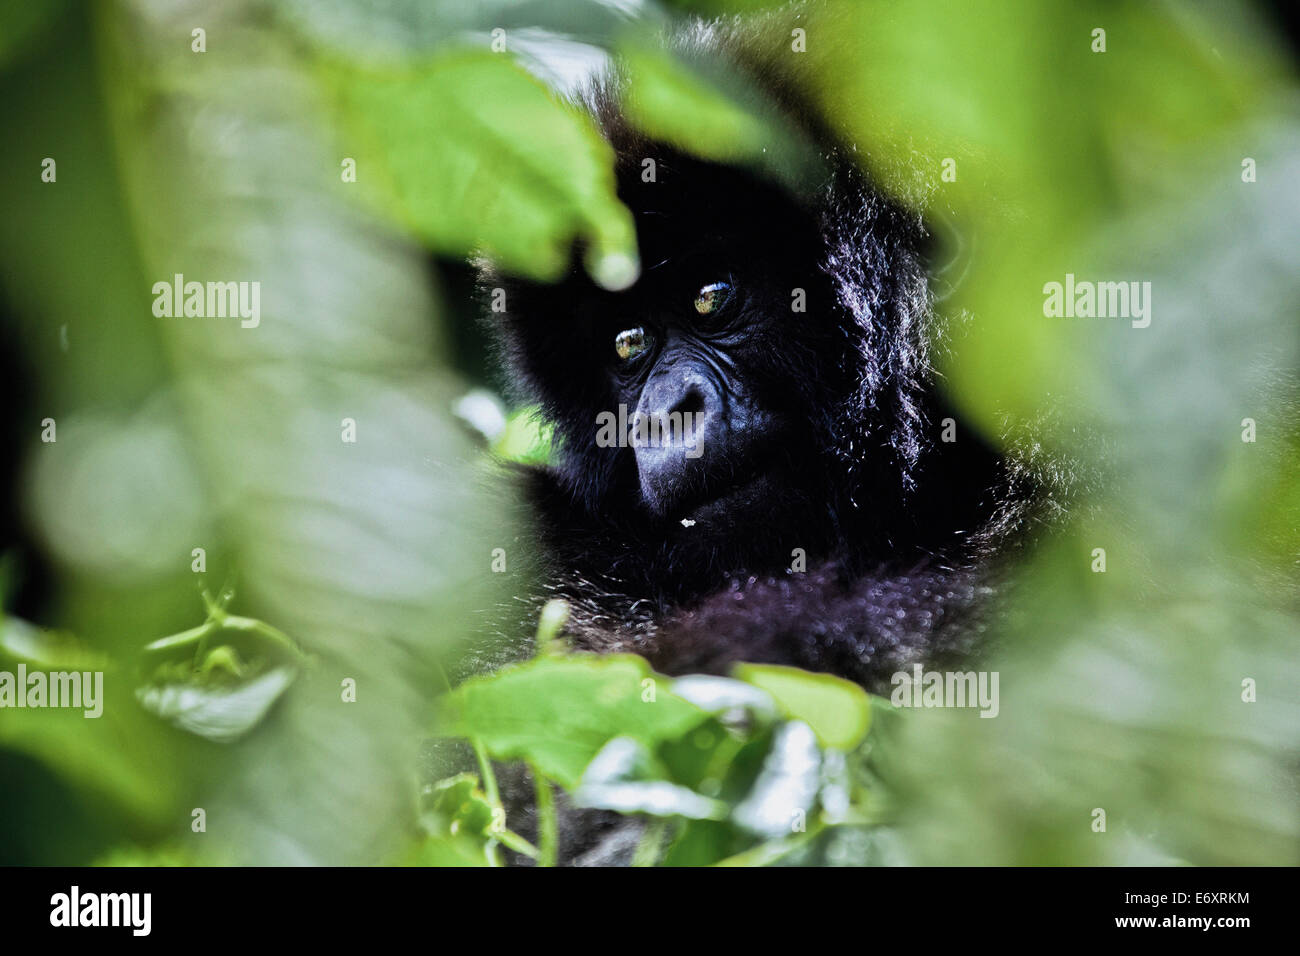 Young mountain gorilla hidden by green leaves, Volcanoes National Park, Ruanda, Africa - Stock Image